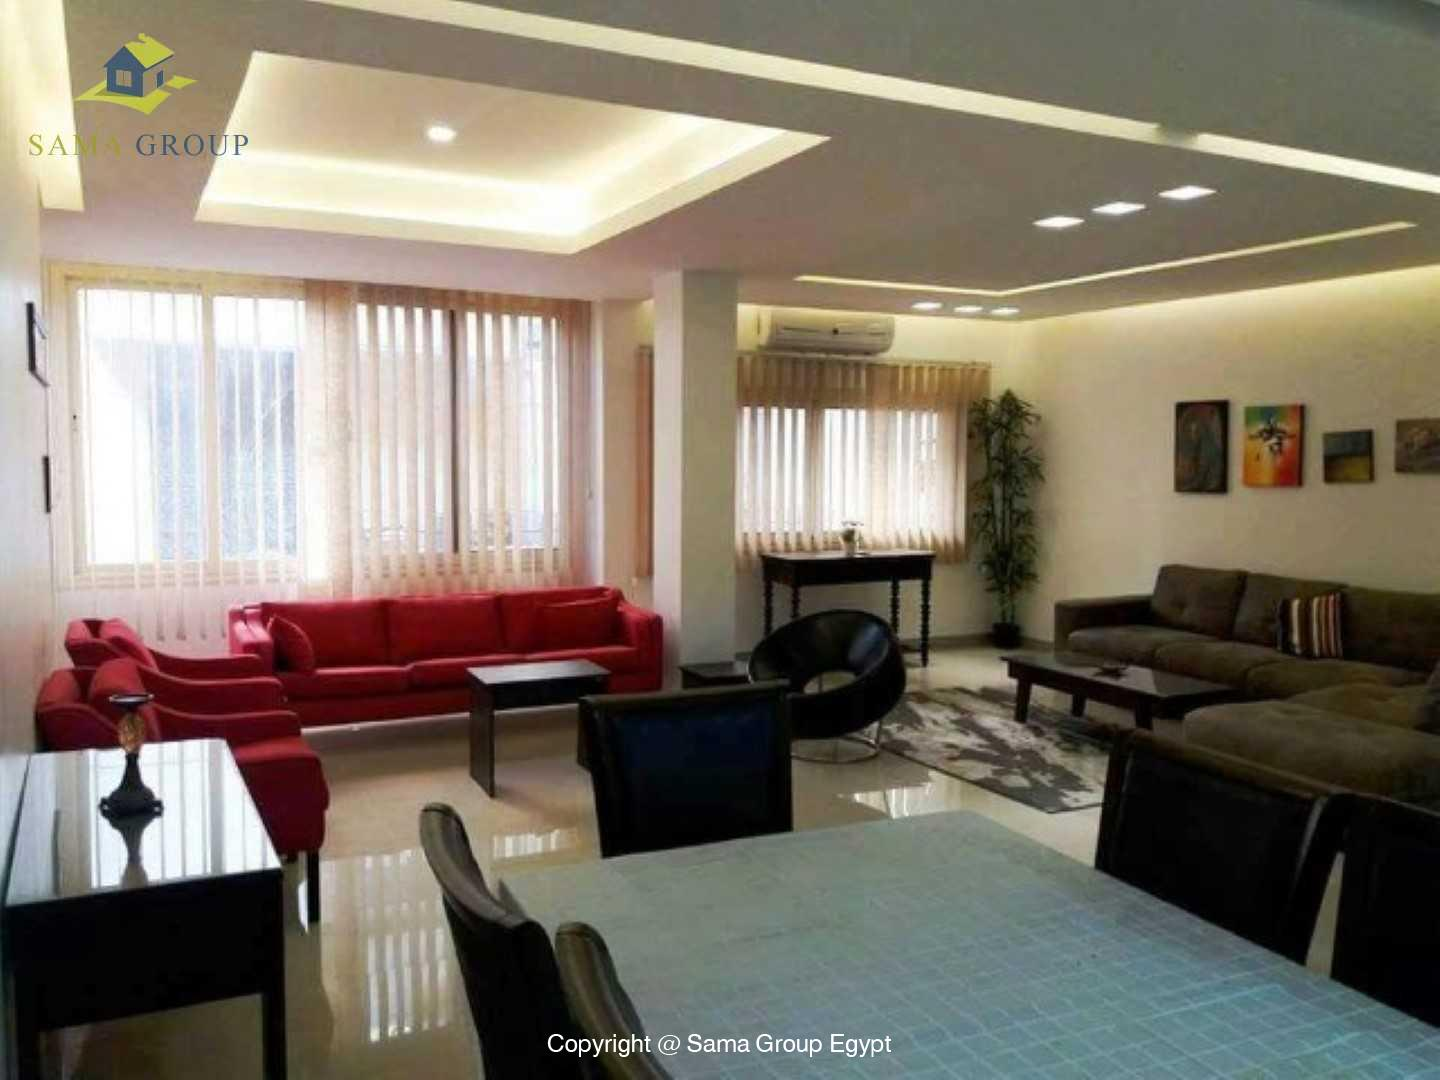 Brand New Apartment For Rent In Maadi Sarayat,Modern Furnished,Apartment NO #2